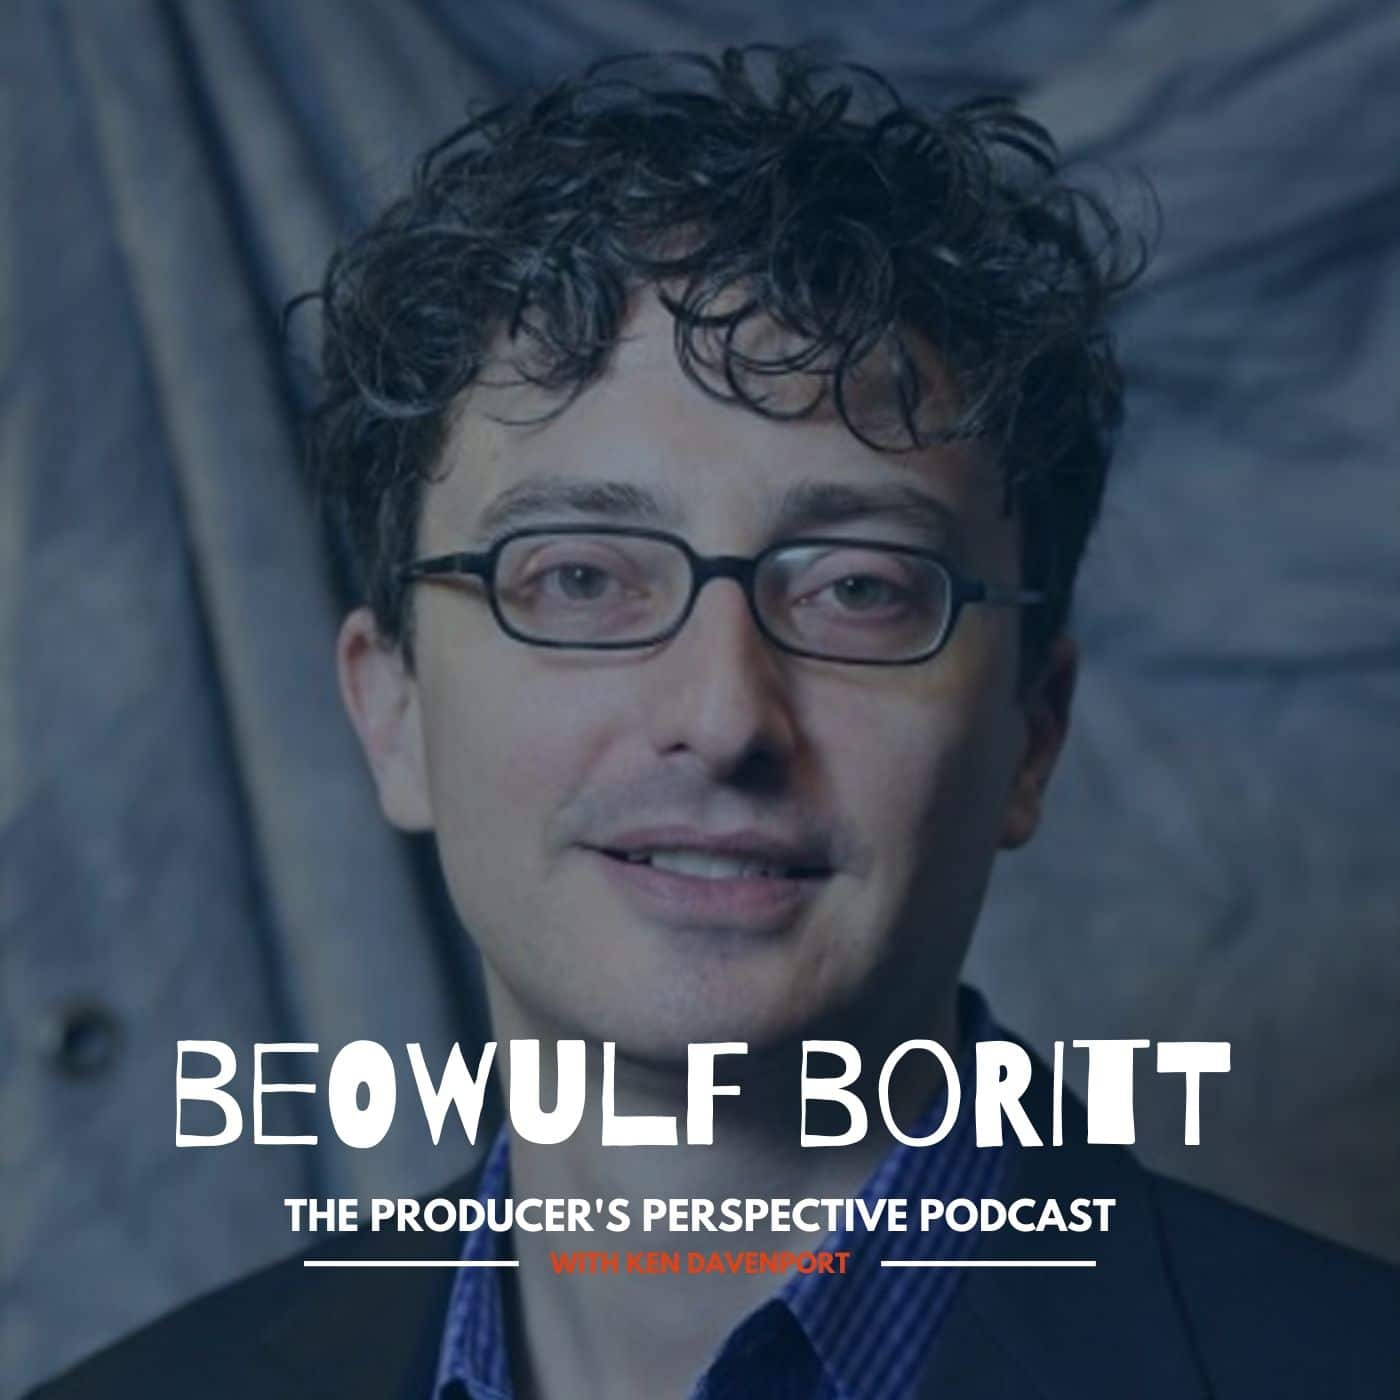 Ken Davenport's The Producer's Perspective Podcast Episode 107 - Beowulf Boritt